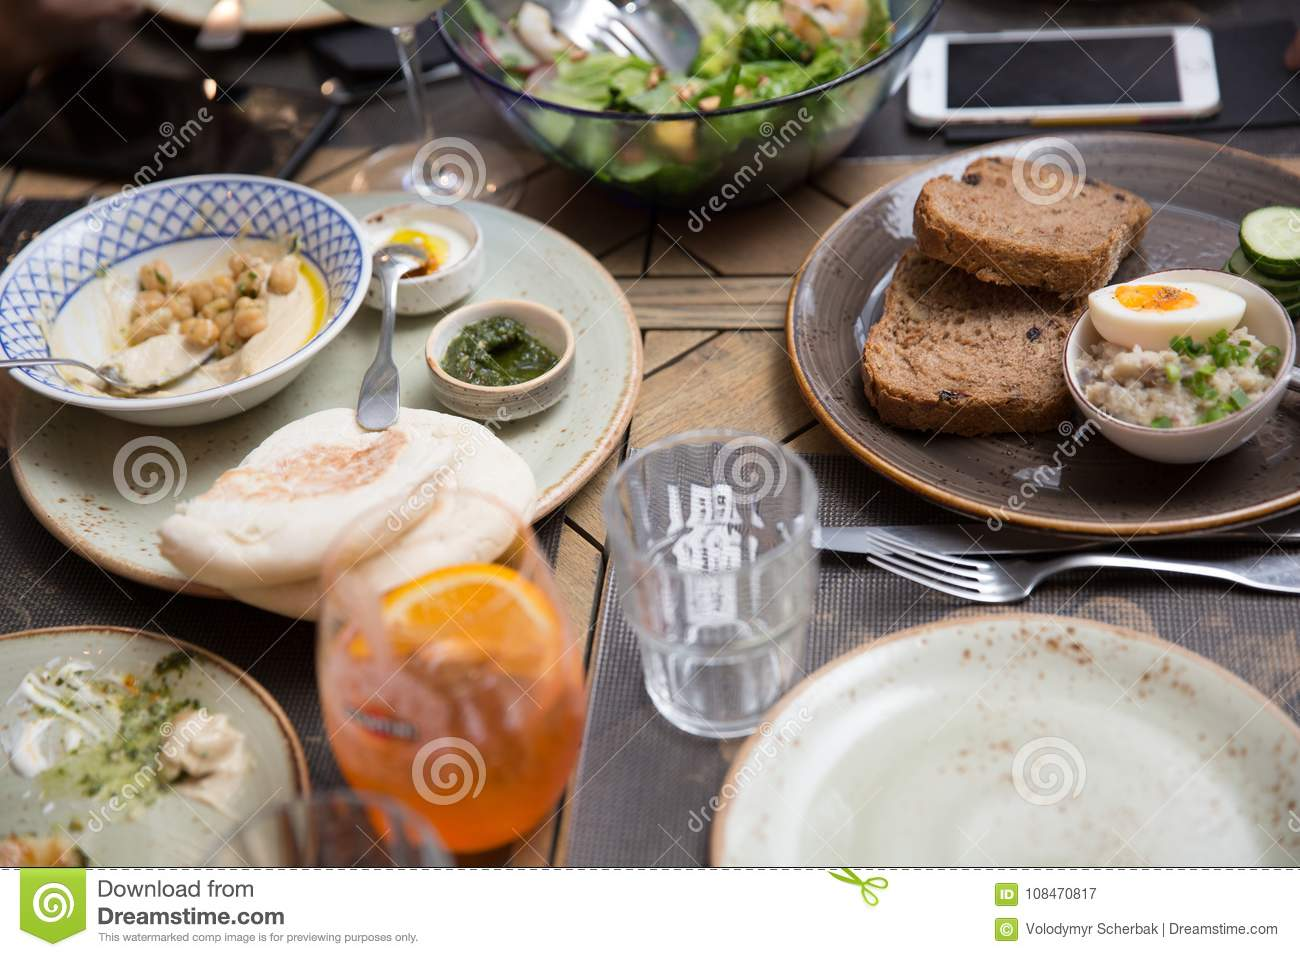 Leftovers Food On Table At Banquet Stock Image Image Of Candid